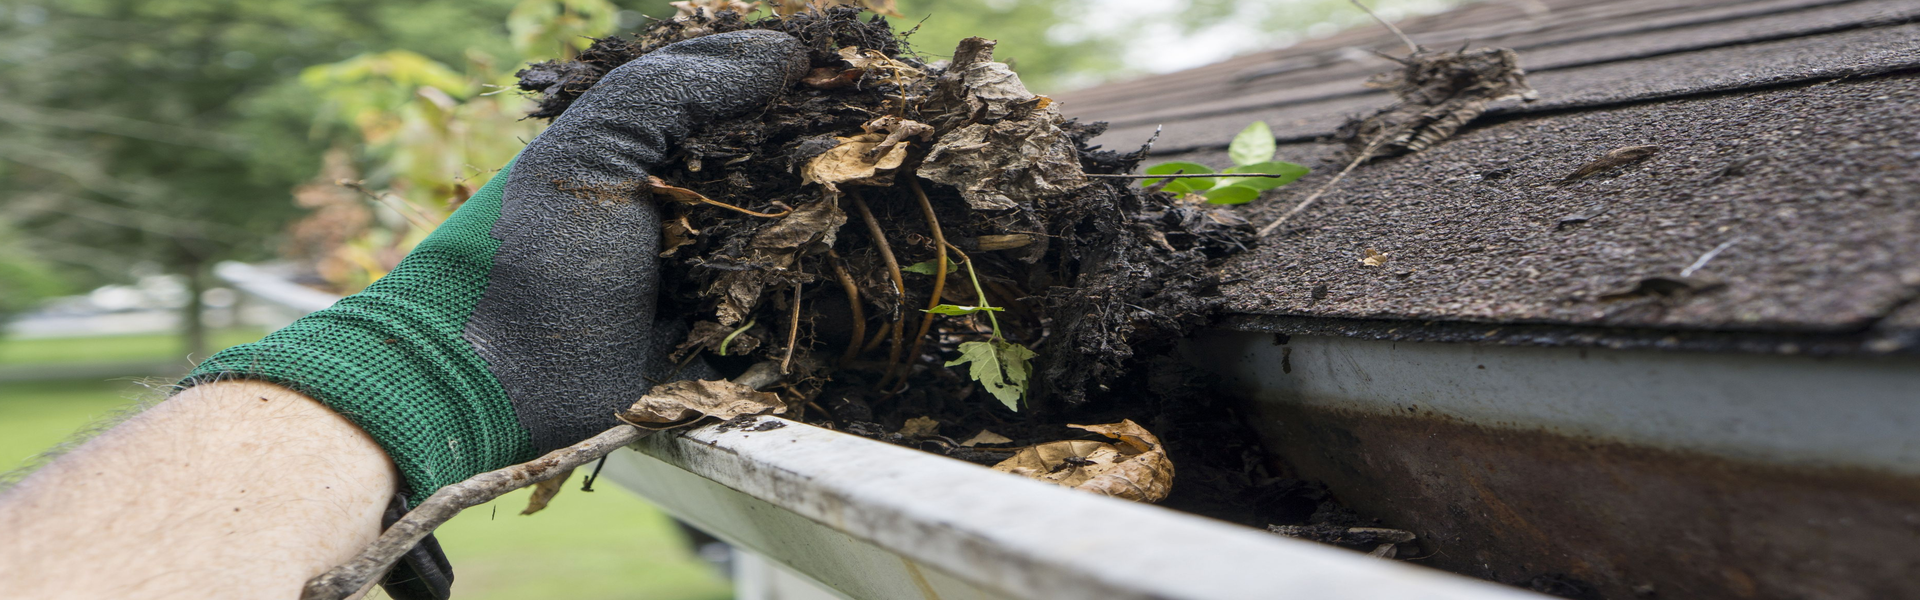 cleaning-gutters-during-the-summer-royalty-free-image-485292592-1541689661